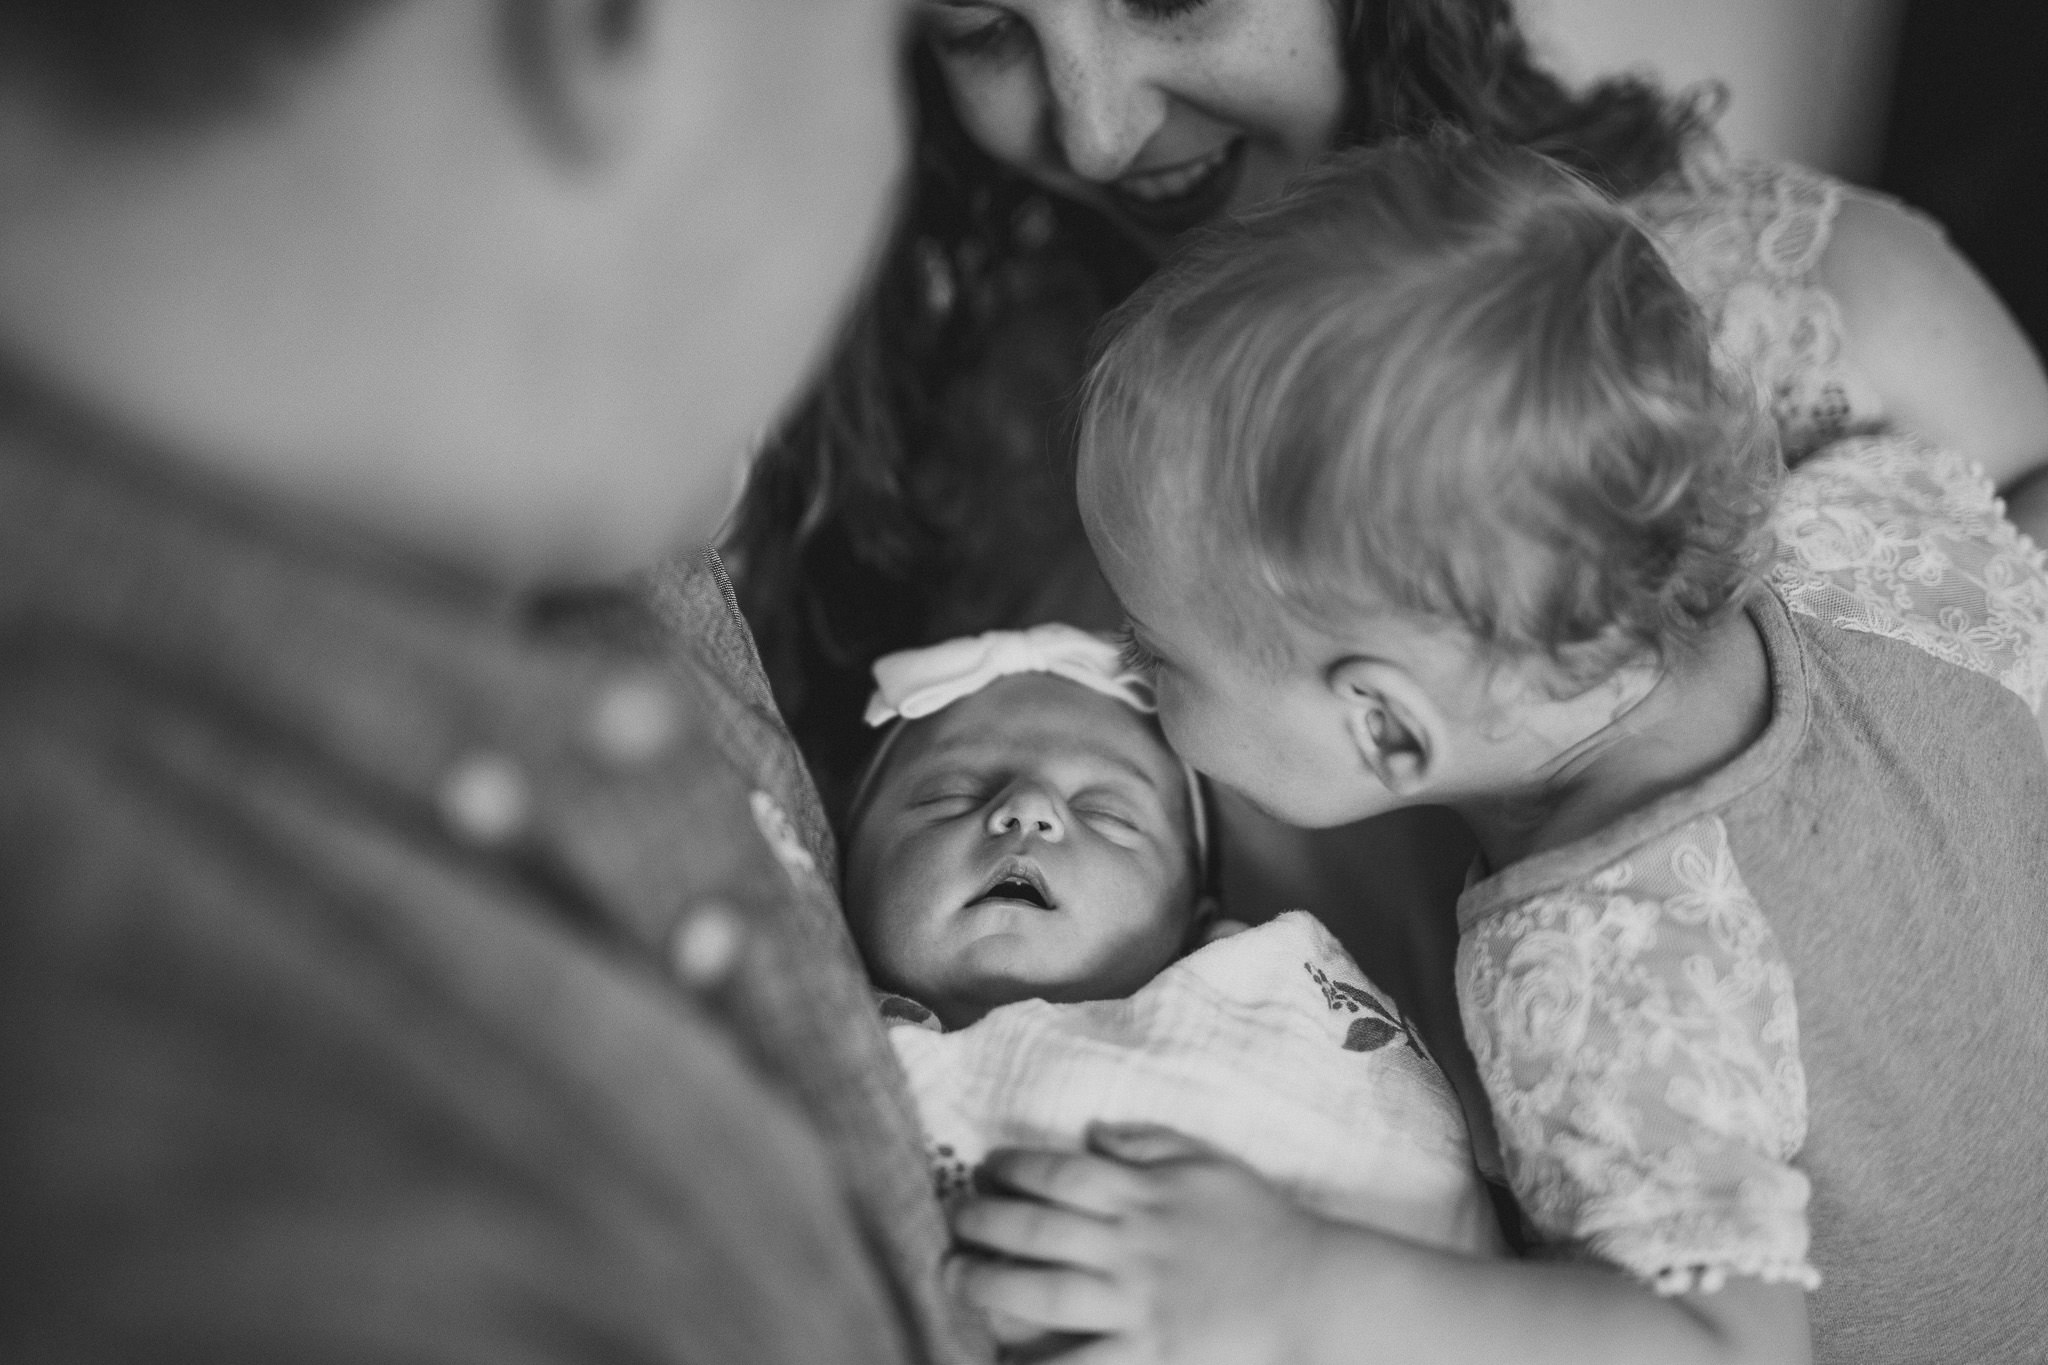 mom dad mother father looking at newborn baby holding in arms in home family nashville tennessee photography photographer photos session thomas wywrot black white